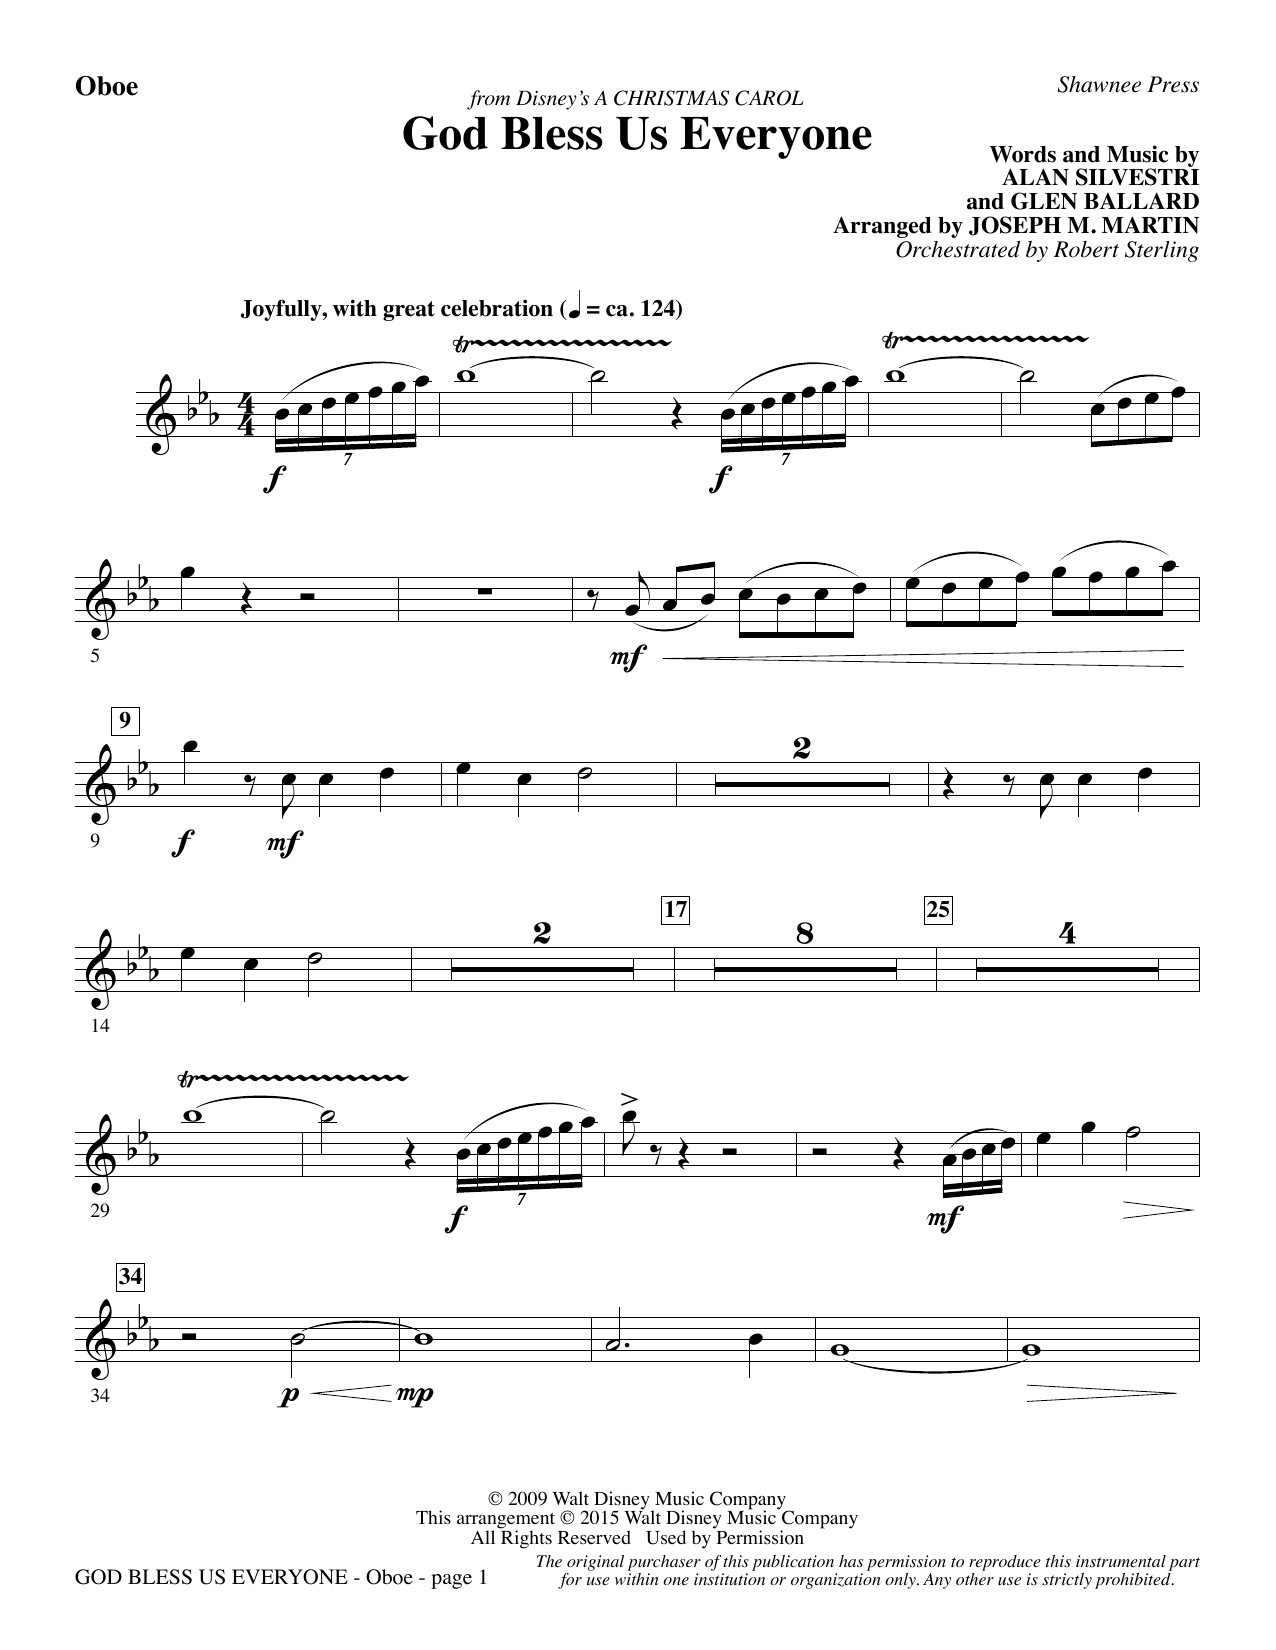 God Bless Us Everyone (from Disney's A Christmas Carol) - Oboe sheet music